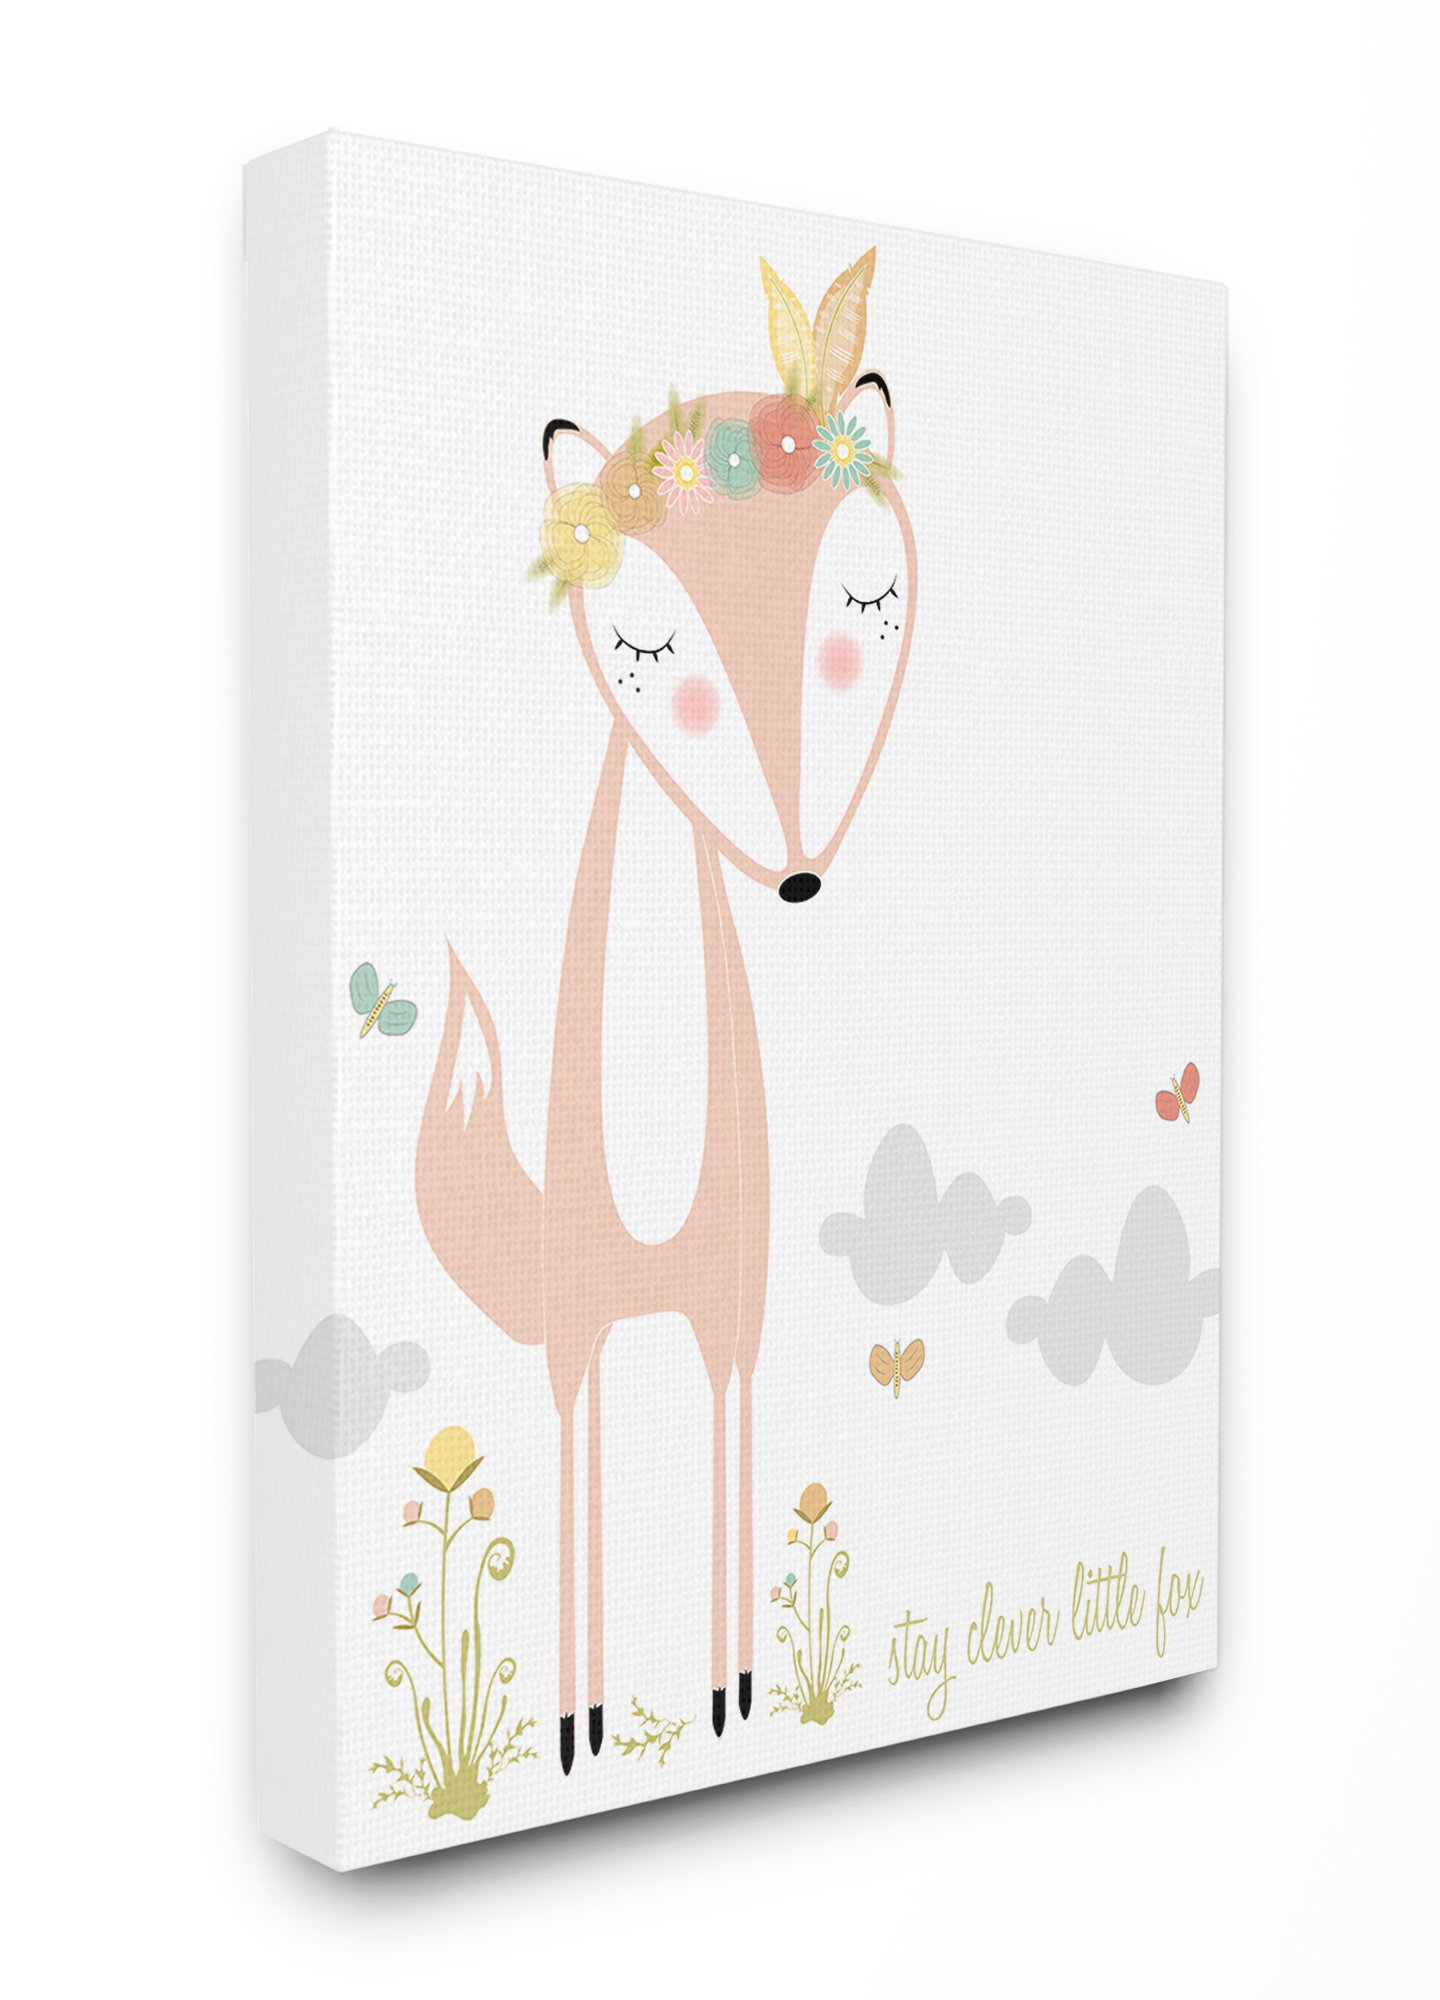 The Kids Room By Stupell Peach Floral And Feathered Stay Clever Little Fox Stretched Canvas Wall Art 16 X 1 5 X 20 Walmart Com Walmart Com